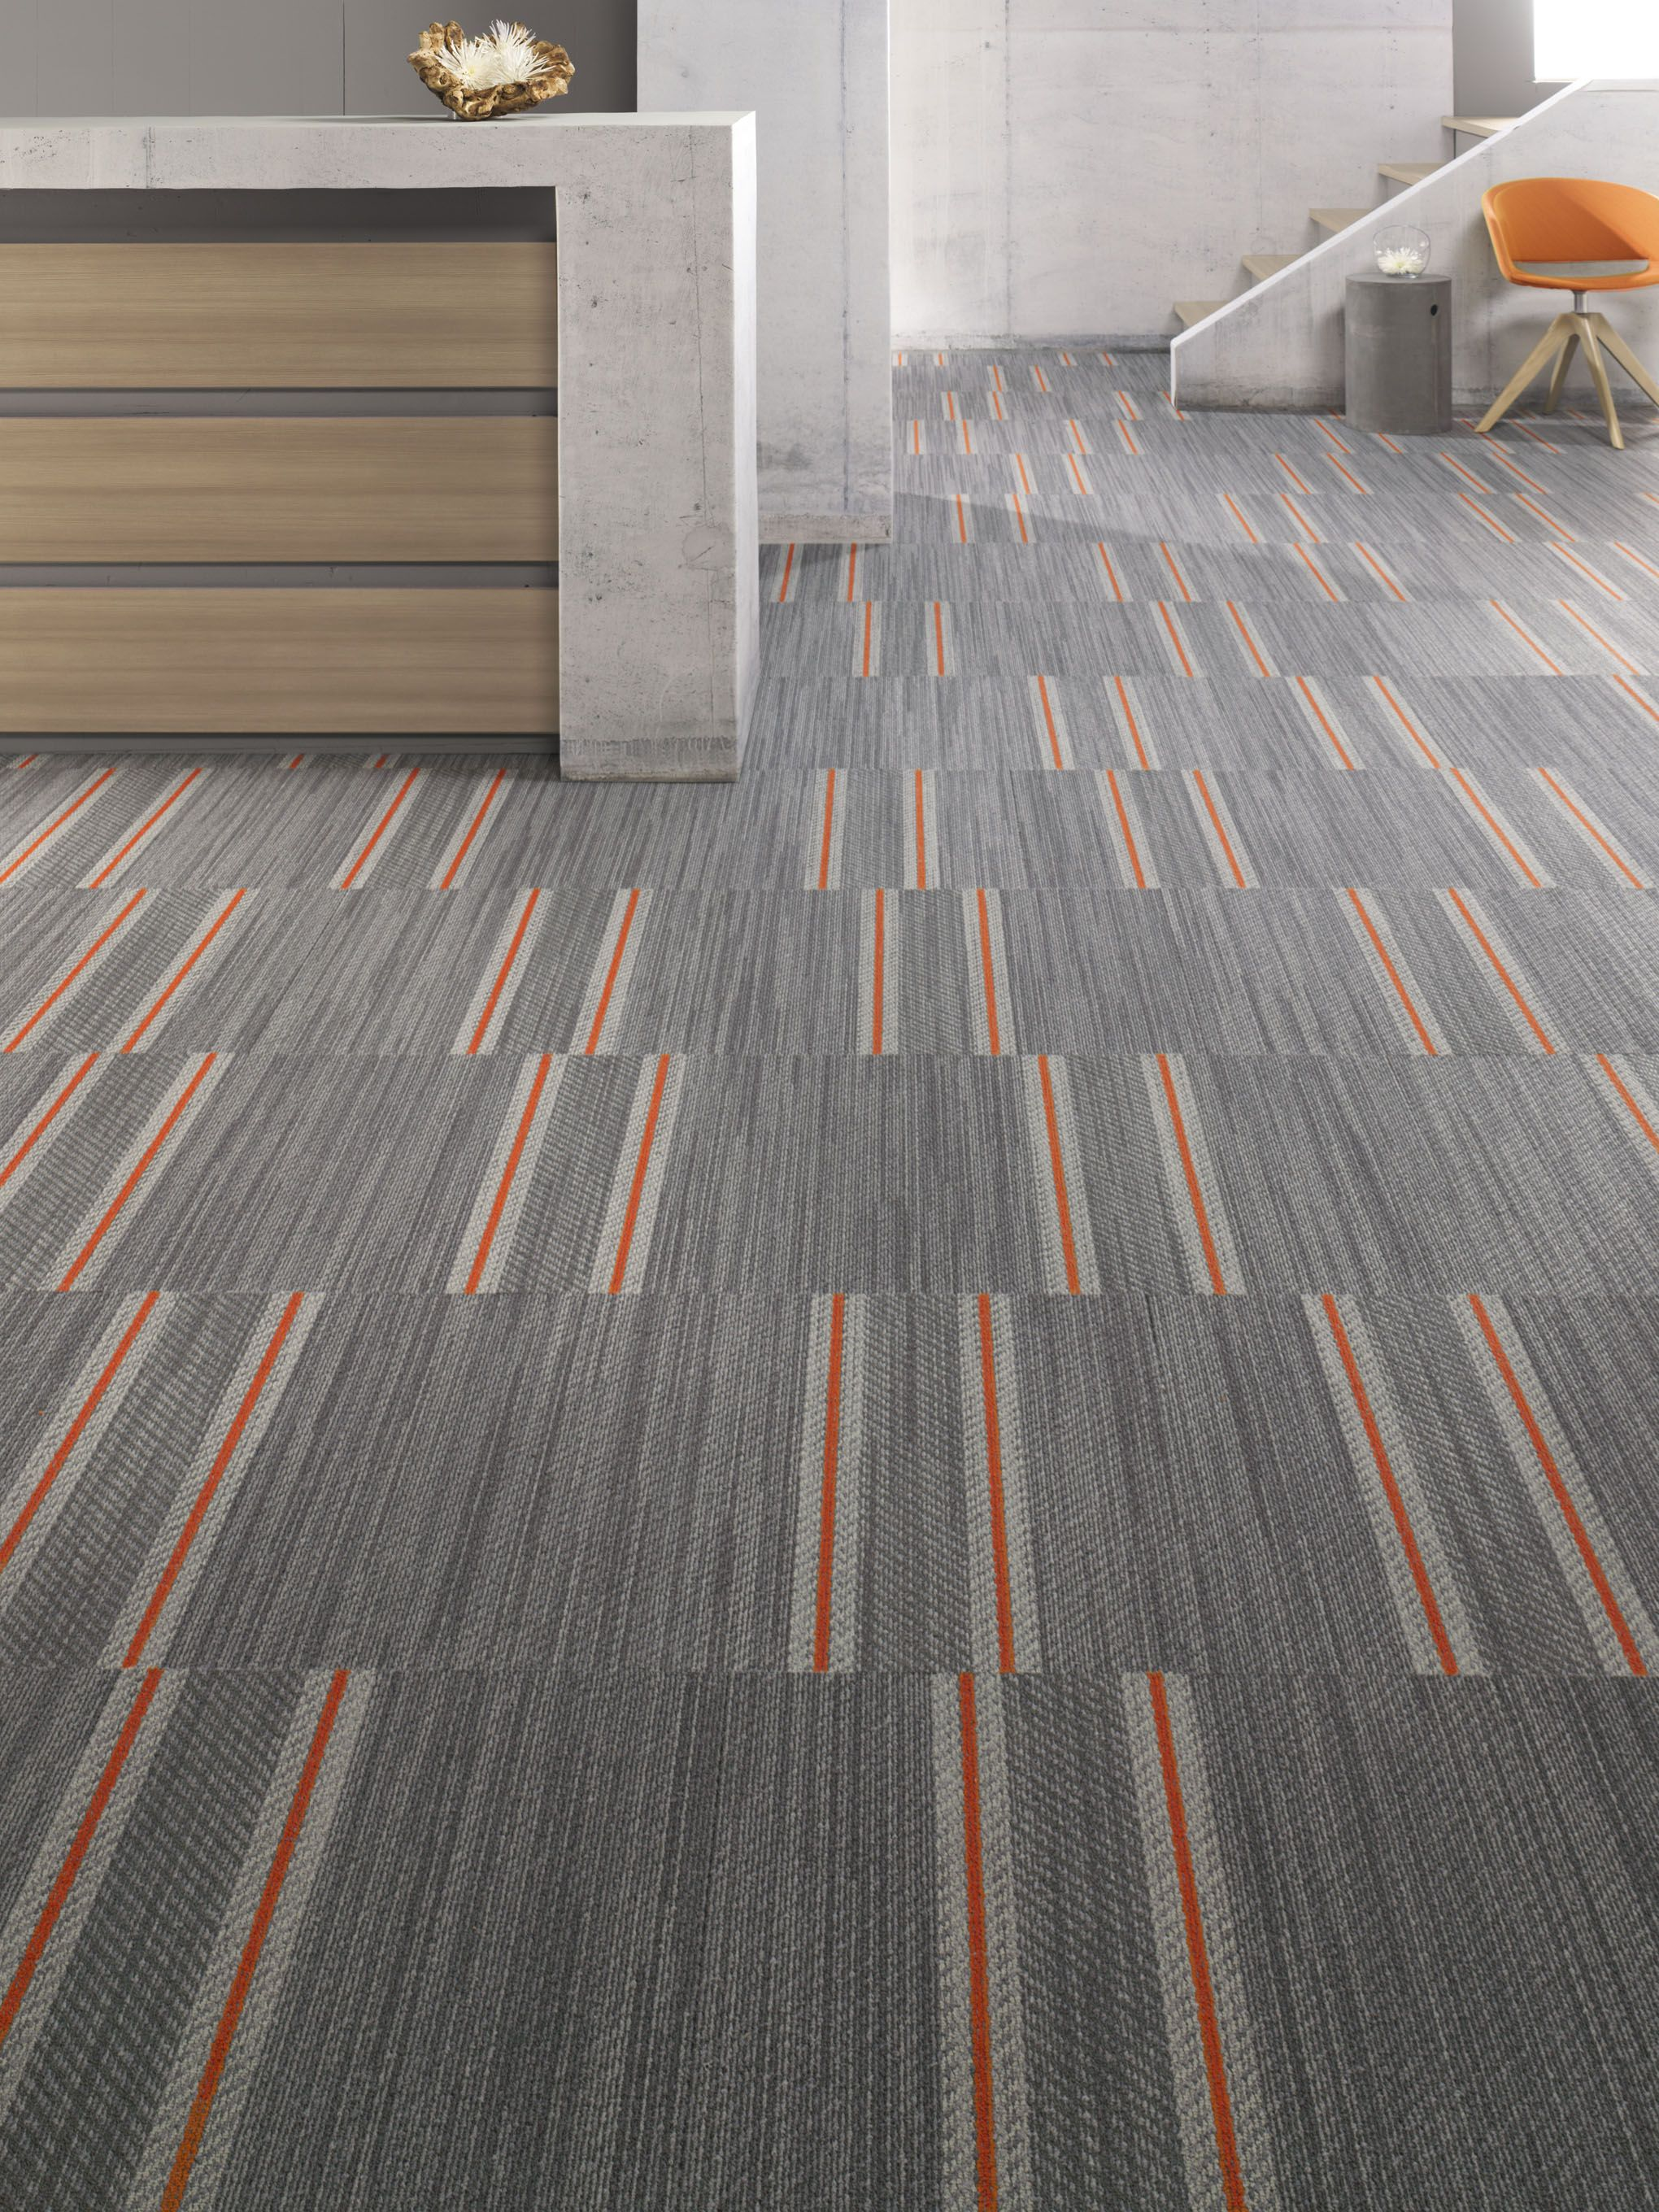 Mohawk carpet tile: #D...